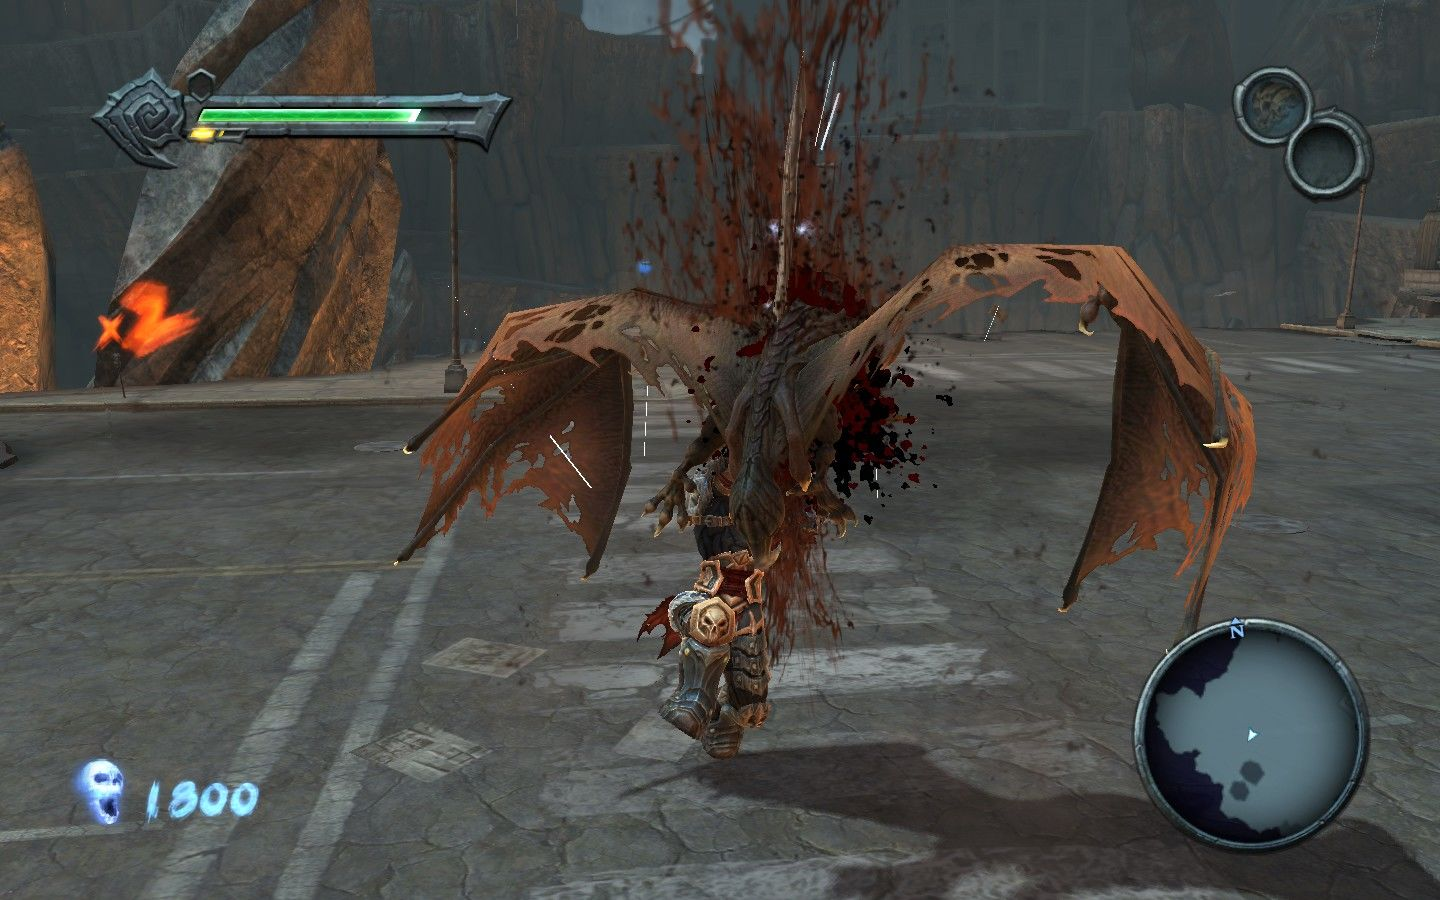 Darksiders Windows The many ways of the art: #2 Jump on airborne enemies for maximum efficiency.